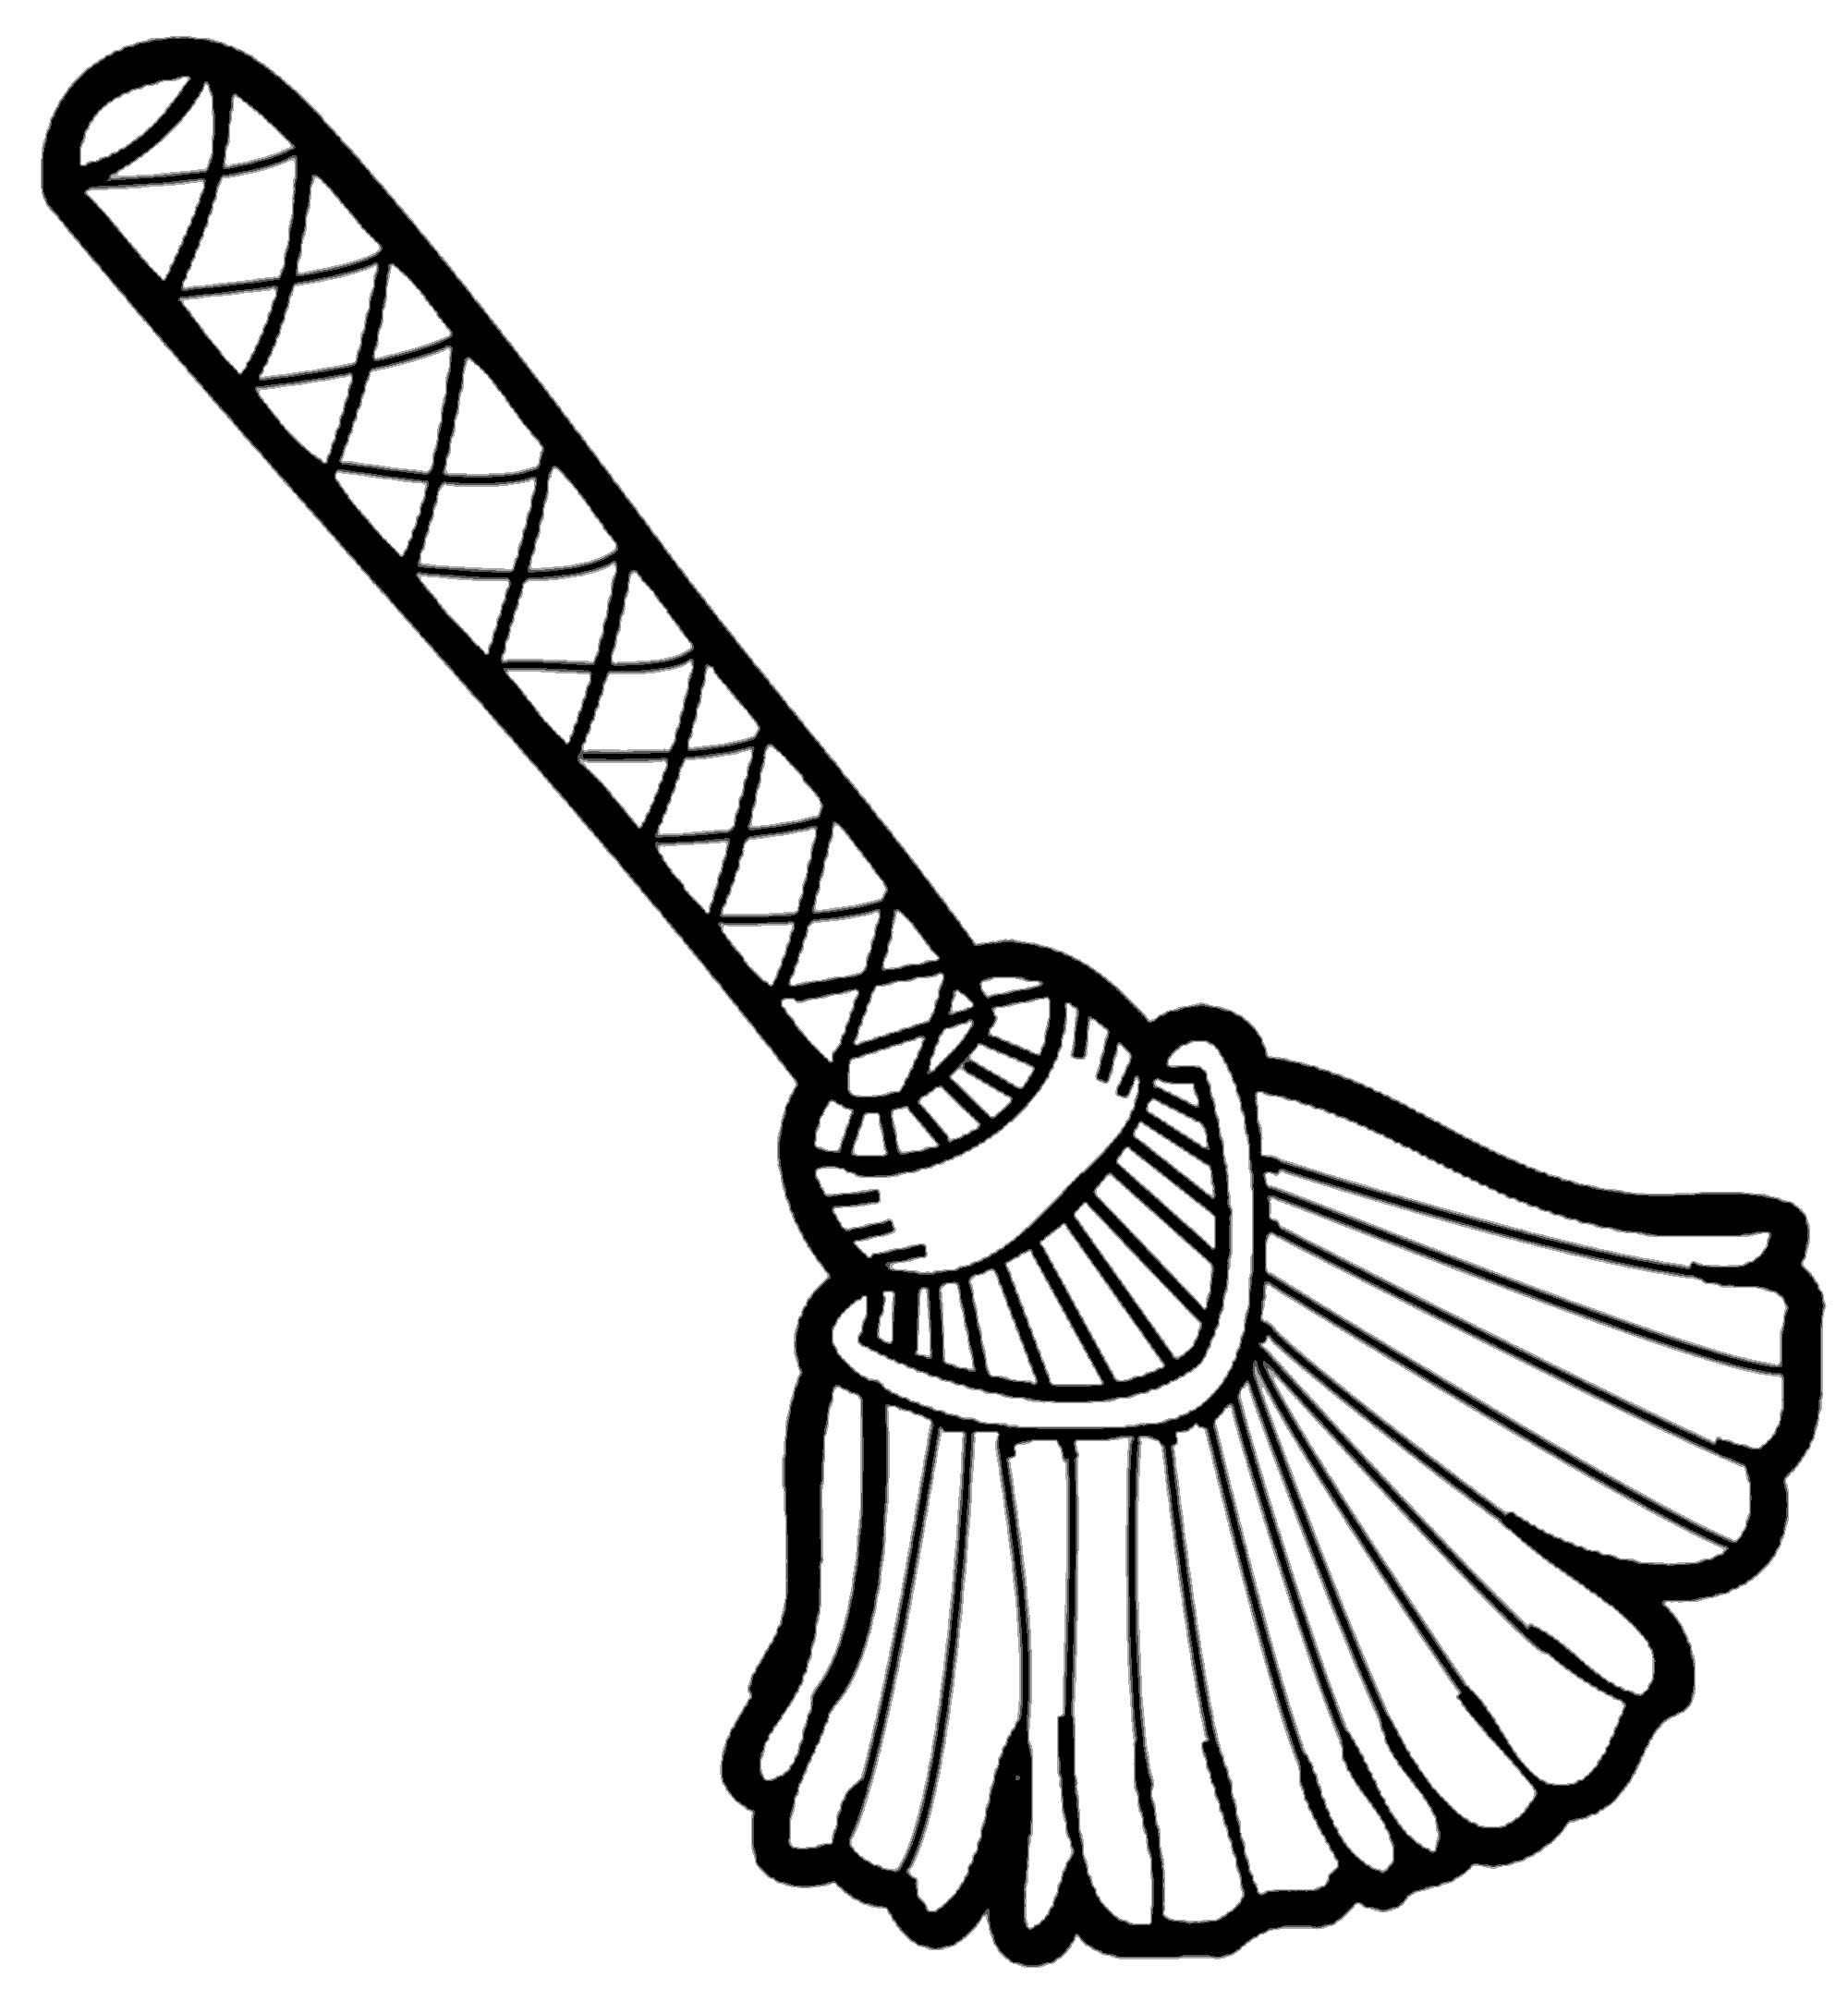 Broom Clipart Black And White.